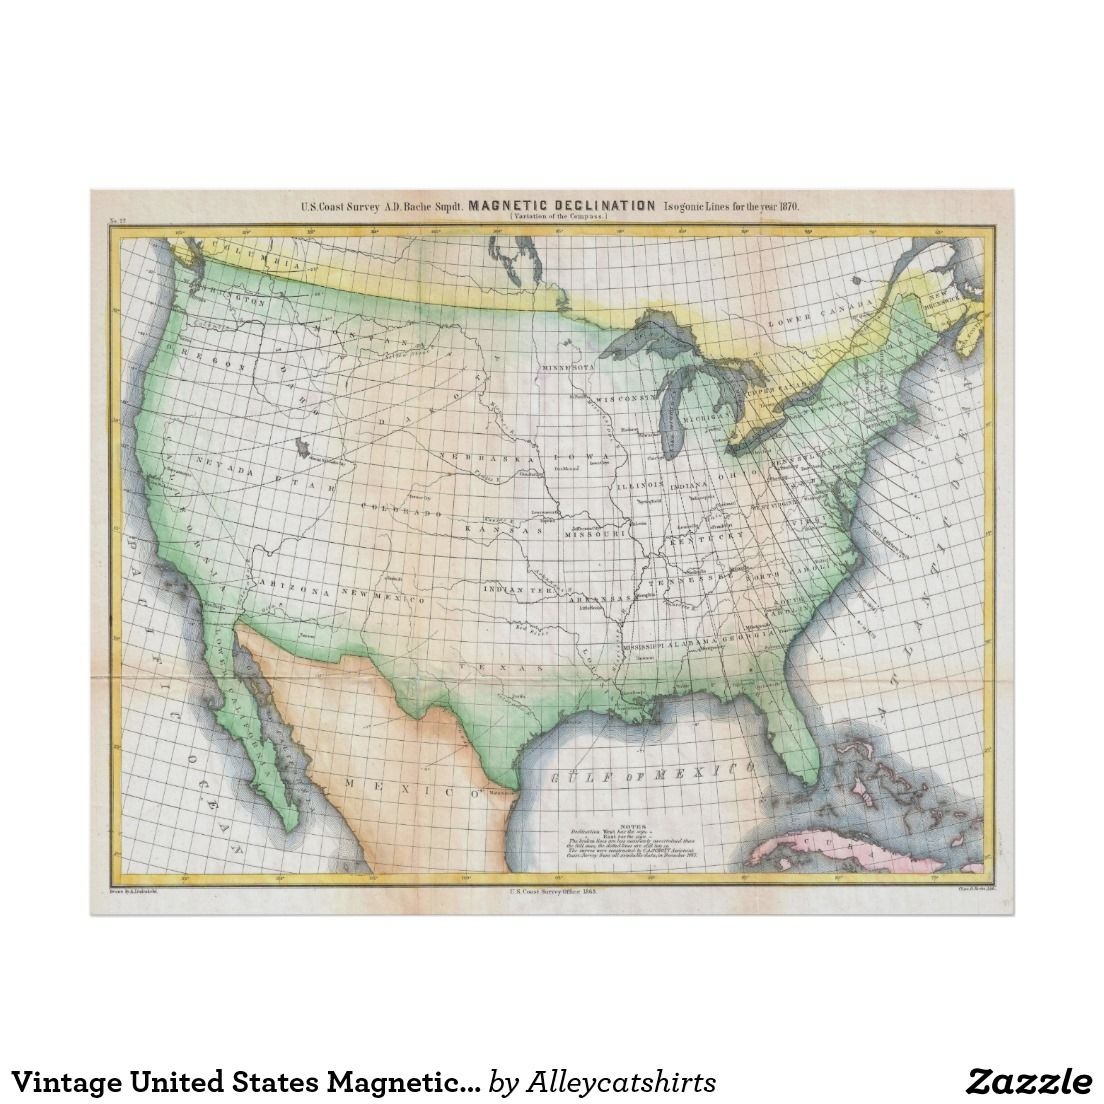 Vintage United States Magnetic Declination Map Poster | Vintage Map ...